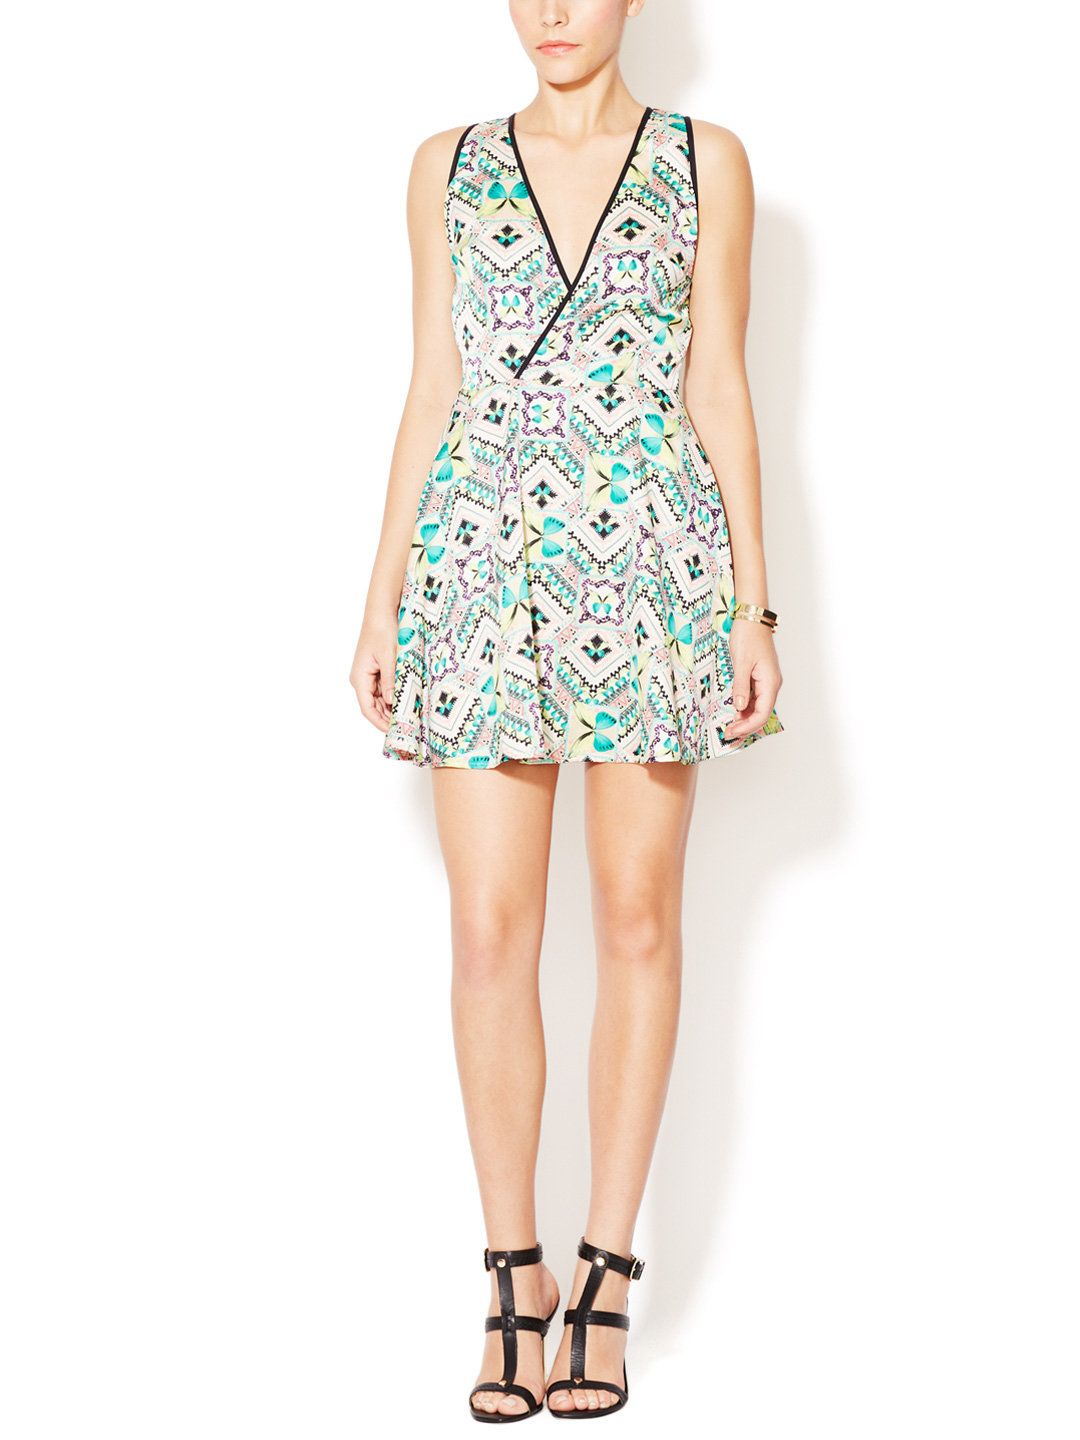 Shania V-Neck Cut-Out Dress by KAS at Gilt